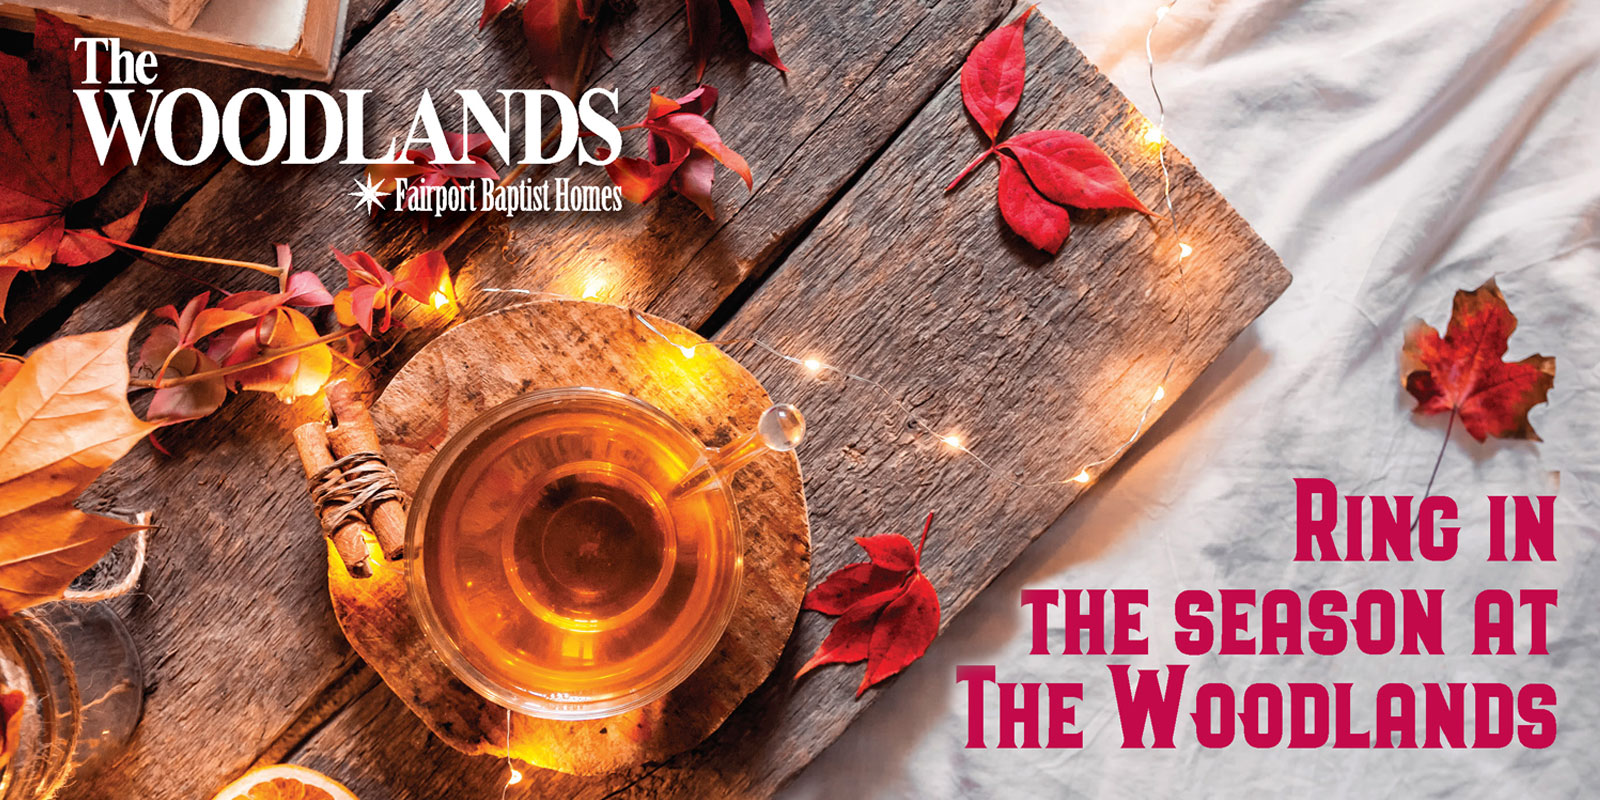 Ring in the season at The Woodlands